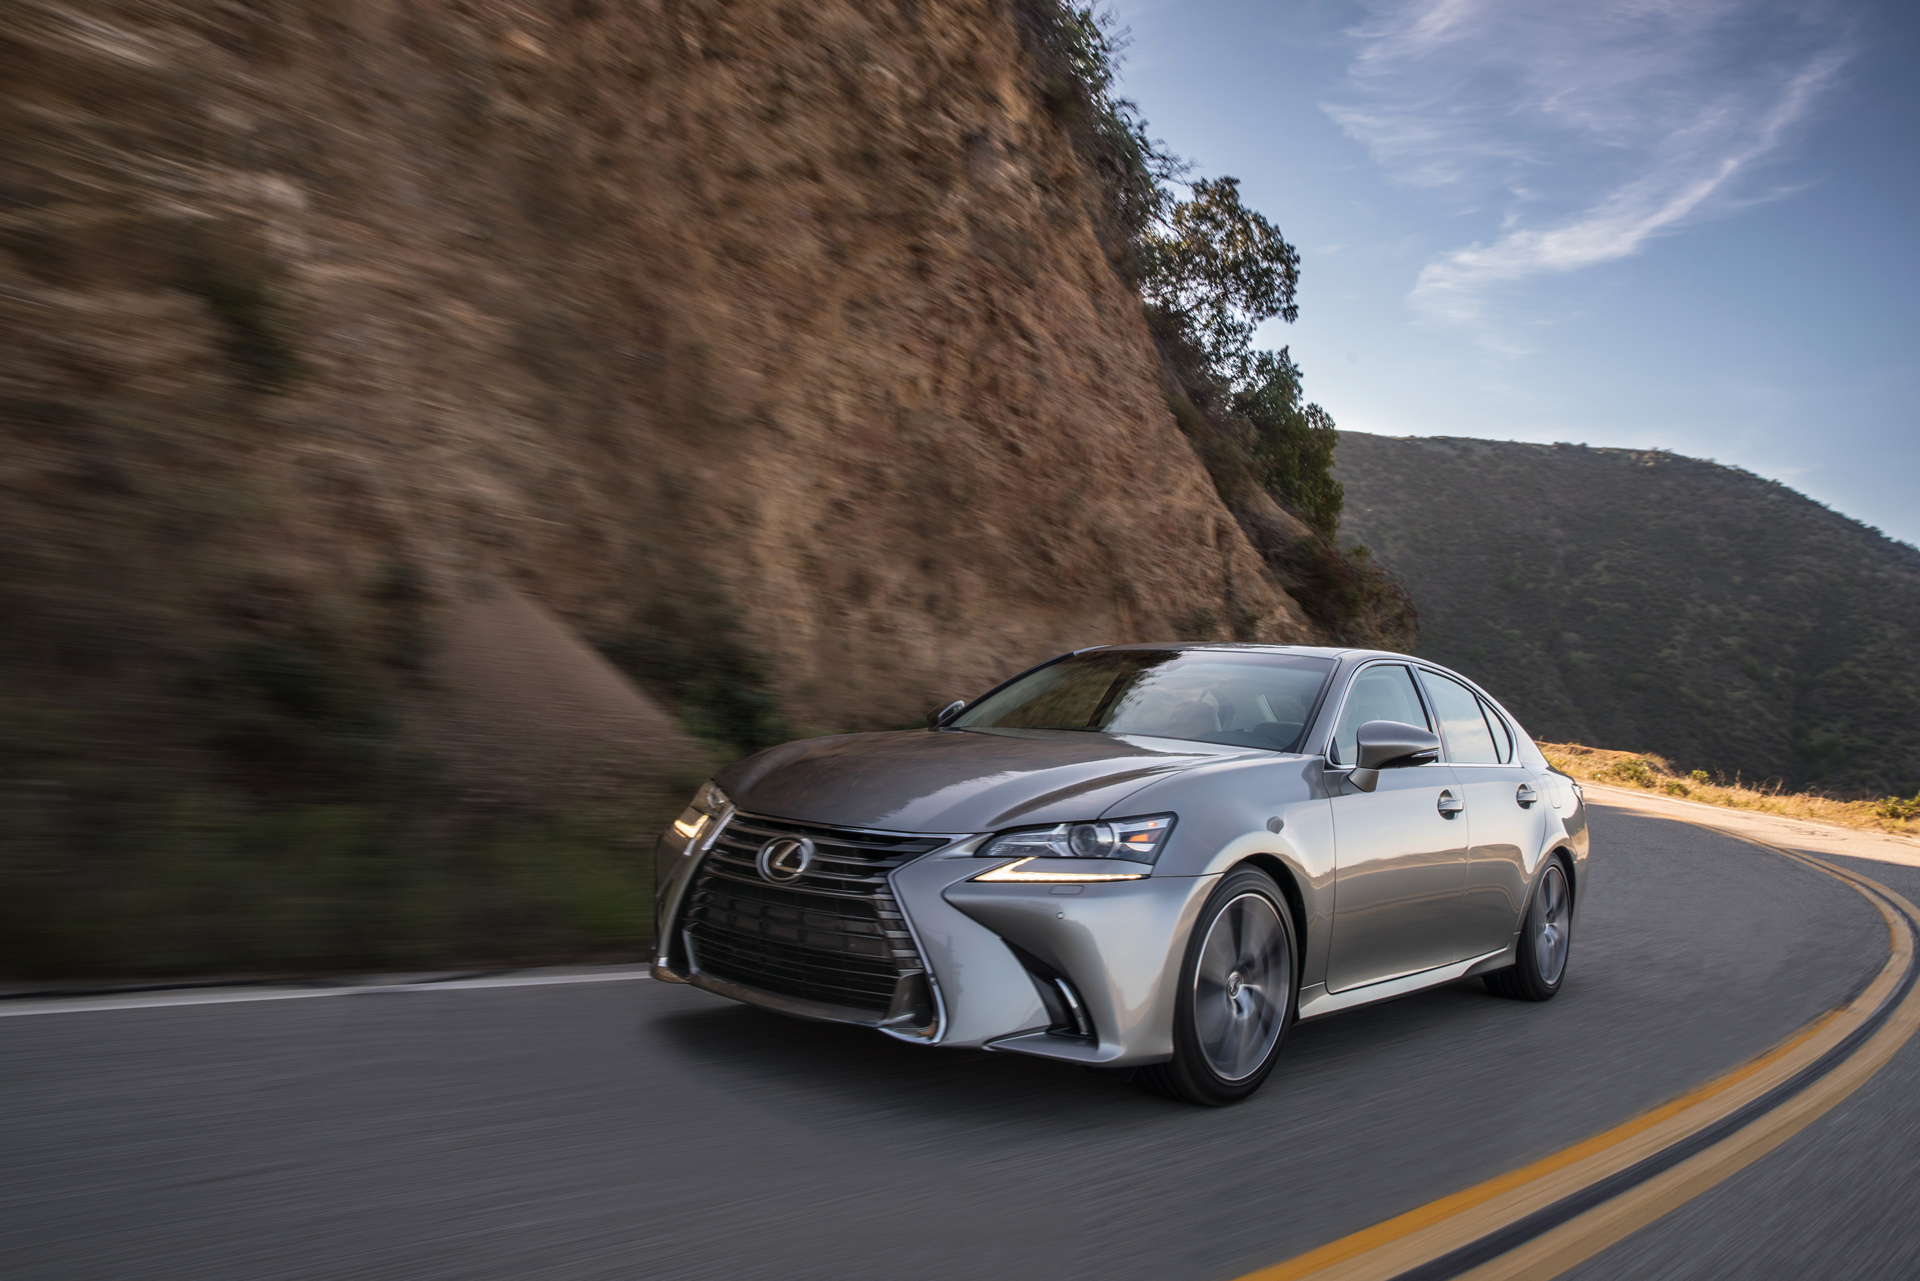 2016 Lexus GS 200t © Toyota Motor Corporation